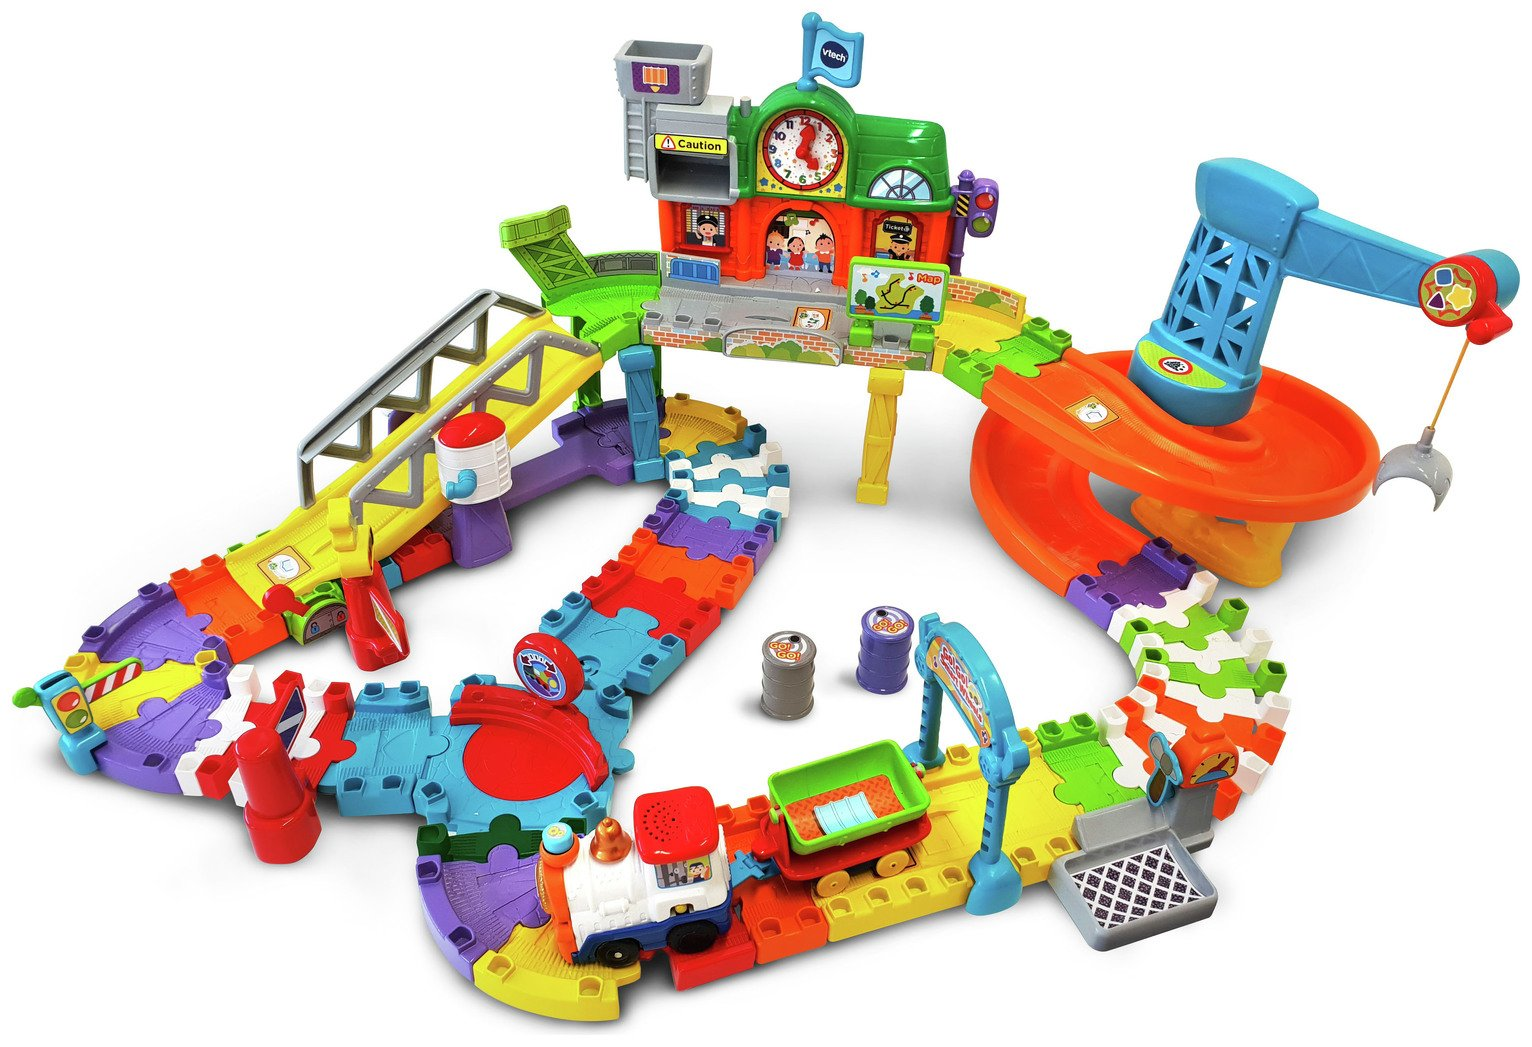 VTech Toot-Toot Drivers Train Set